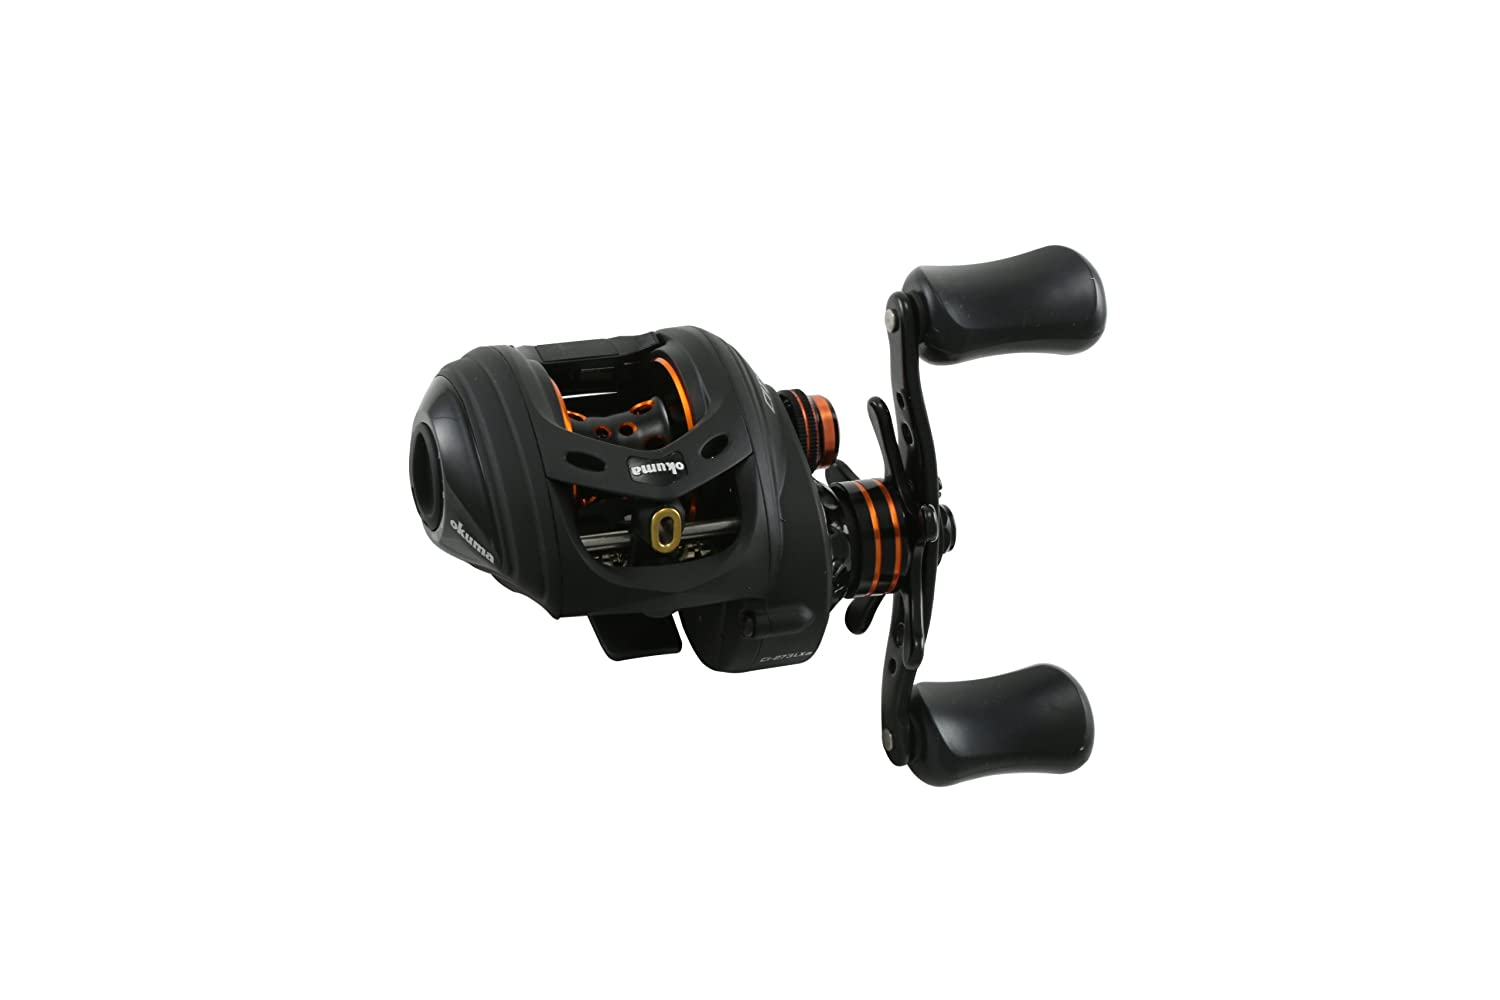 Okuma Fishing Tackle Citrix Ci-273LXa Lightweight Low Profile Baitcast Reel